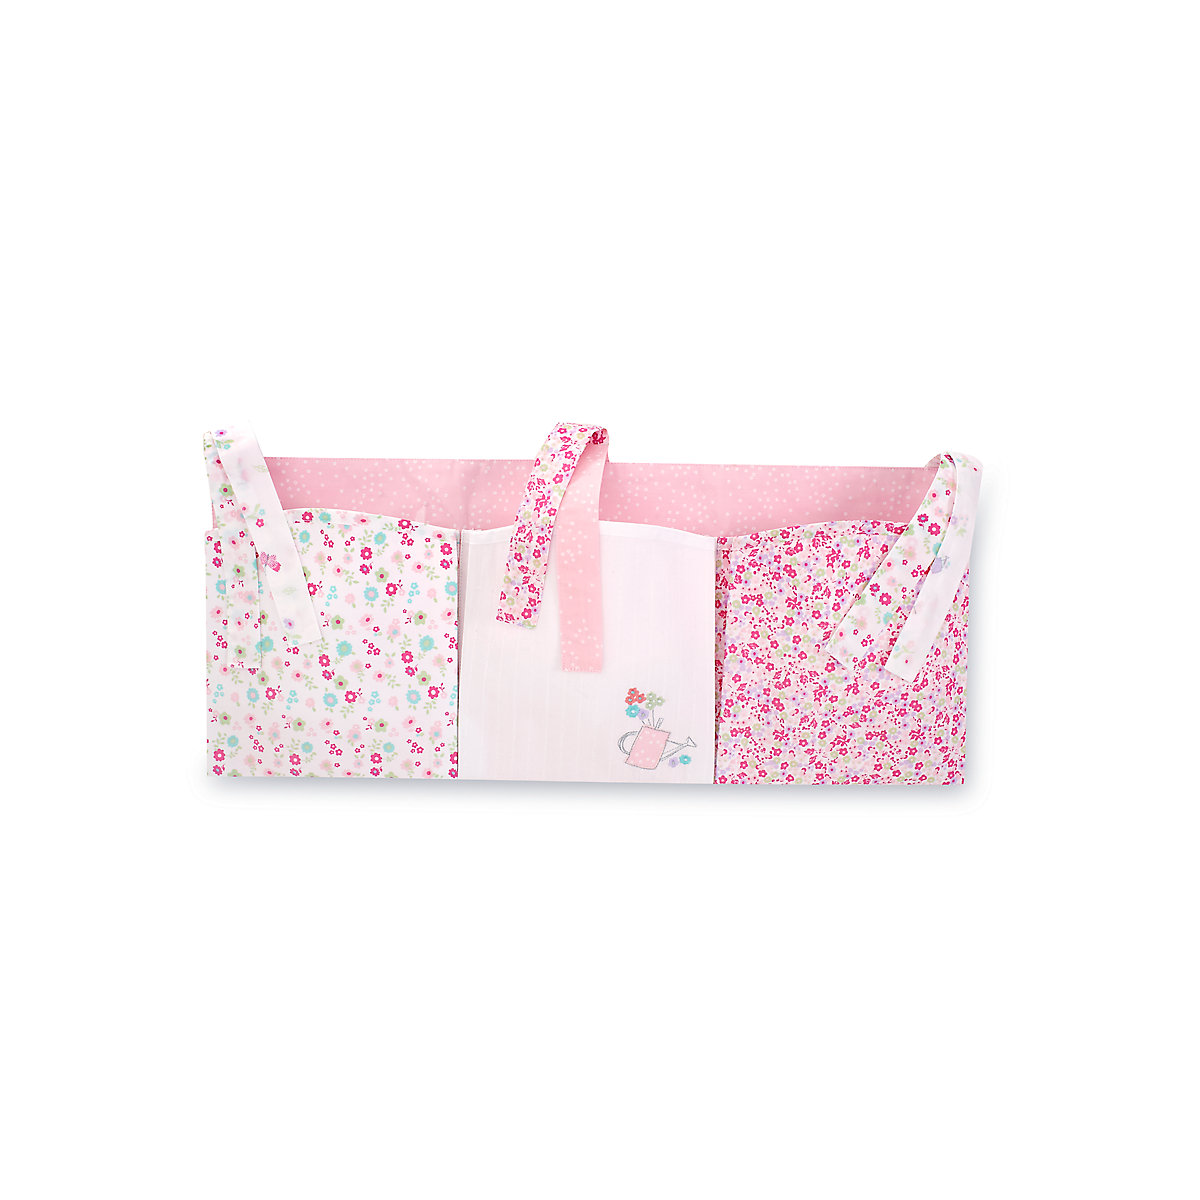 MOTHERCARE BABY BEDDING My Little Garden Cot Pockets - £20 ...